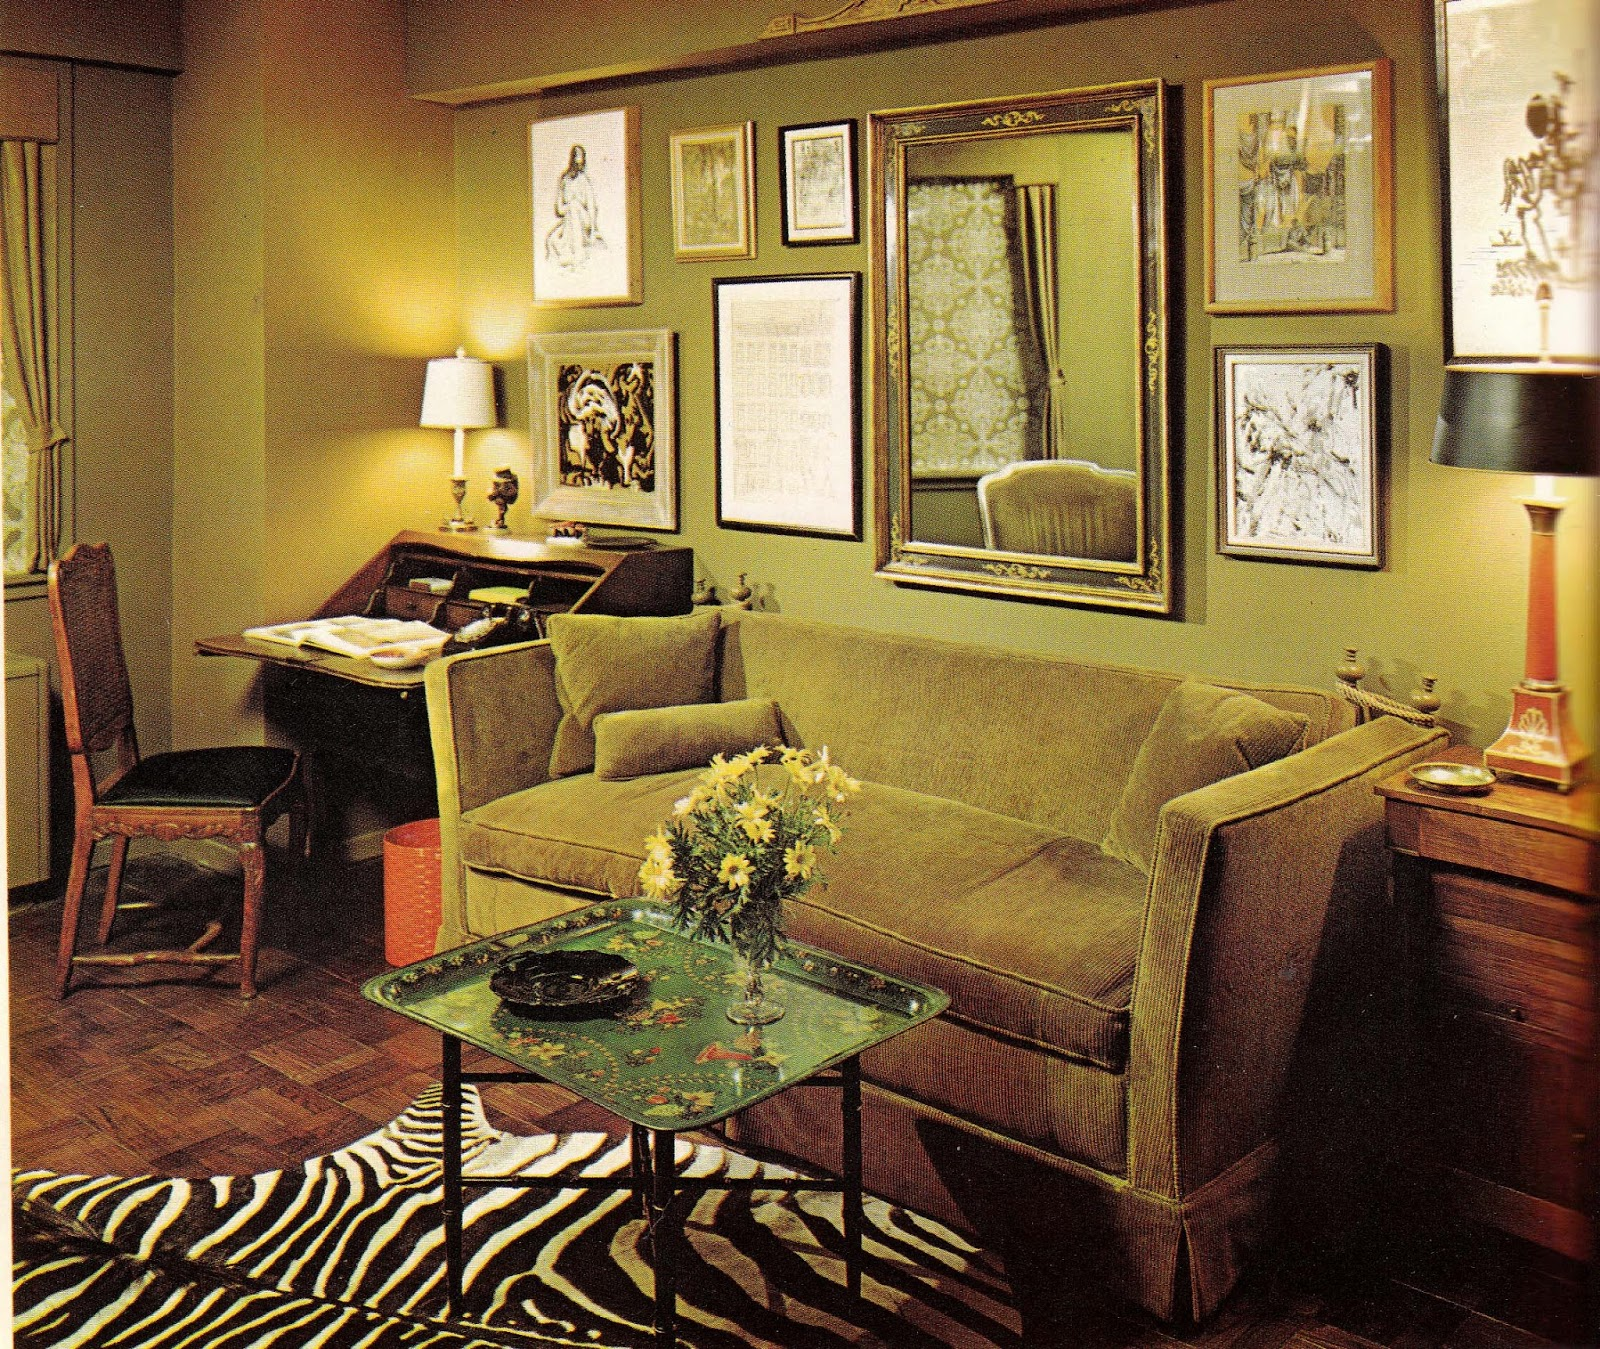 1960s Interior Dcor: The Decade of Psychedelia Gave Rise